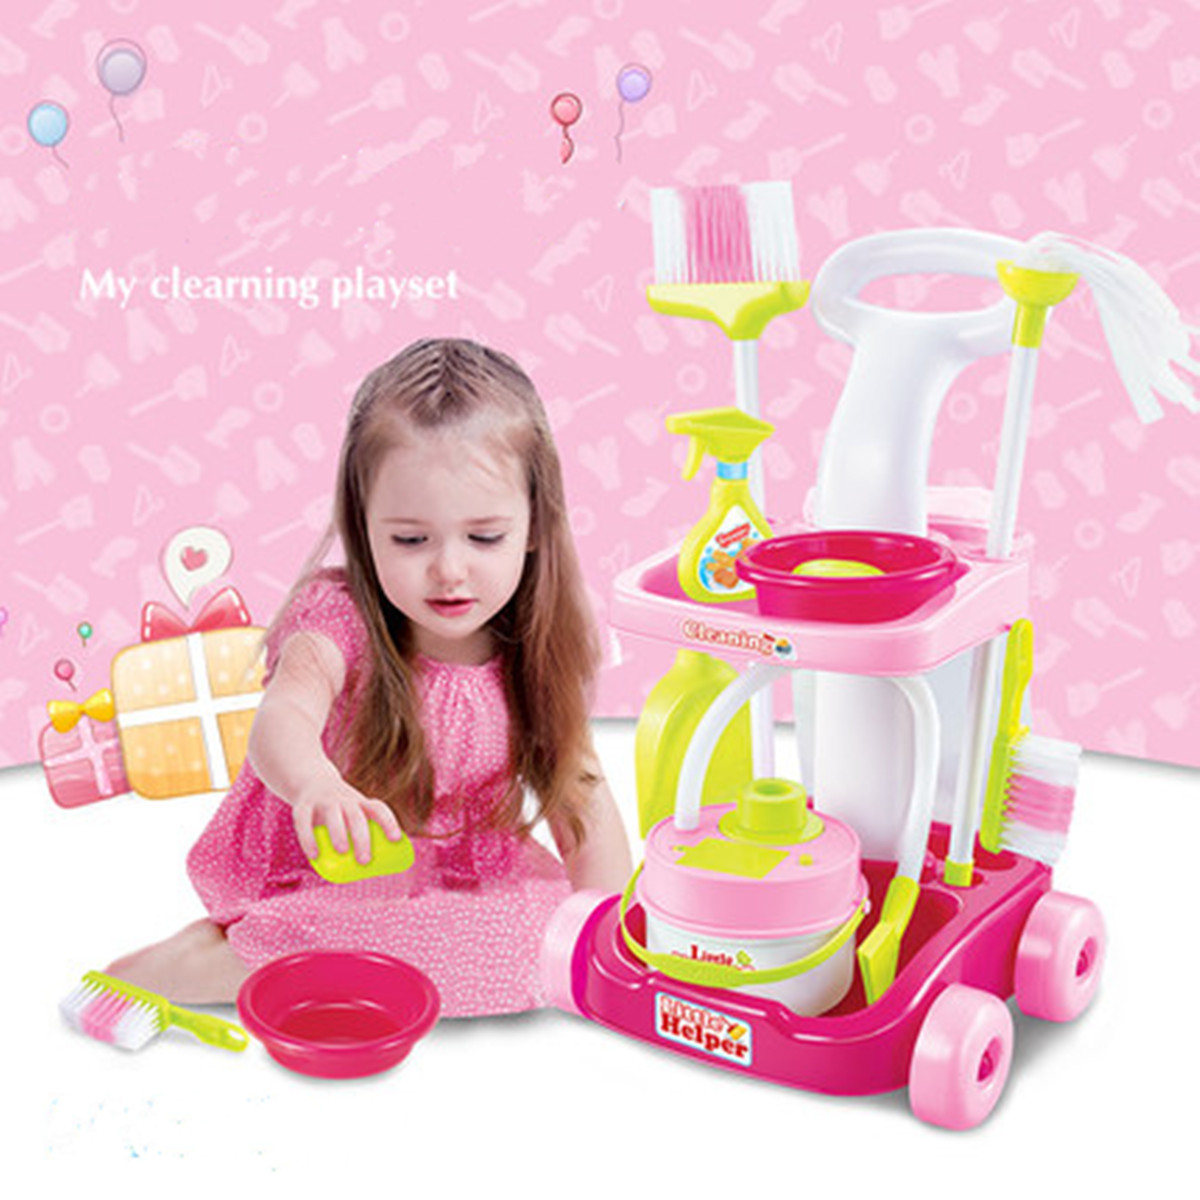 Kids Toddler Cleaner Cleaning Trolley Set Broom Duster Plastic Role Play Educational Toy for children above 3 years 38x19x53cmKids Toddler Cleaner Cleaning Trolley Set Broom Duster Plastic Role Play Educational Toy for children above 3 years 38x19x53cm